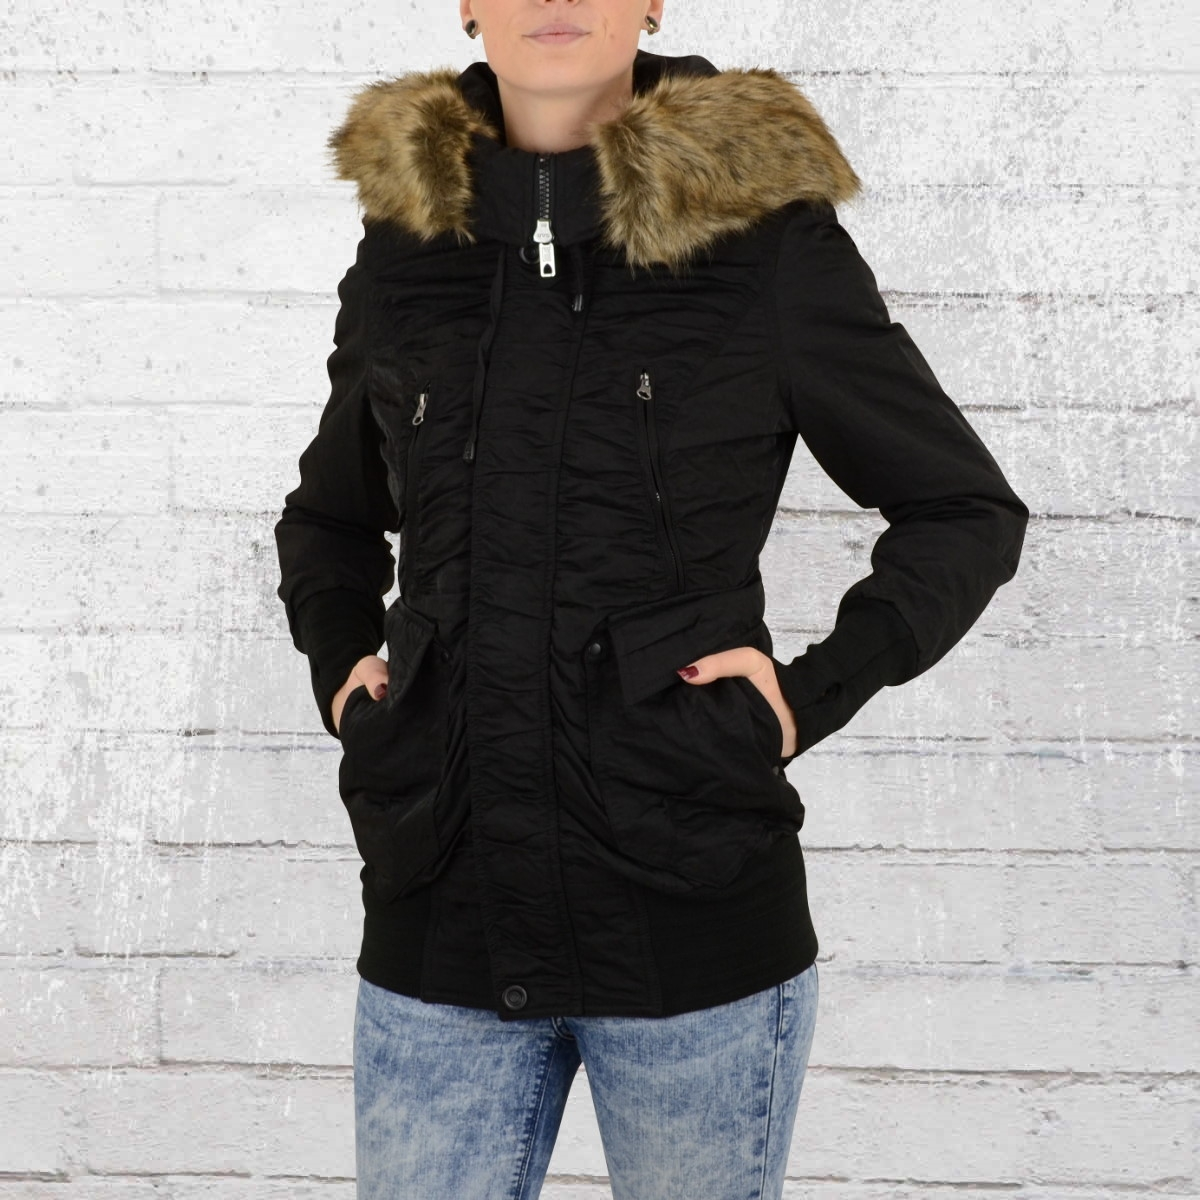 jetzt bestellen jetlag damen parka rs 99a winterjacke schwarz krasse. Black Bedroom Furniture Sets. Home Design Ideas